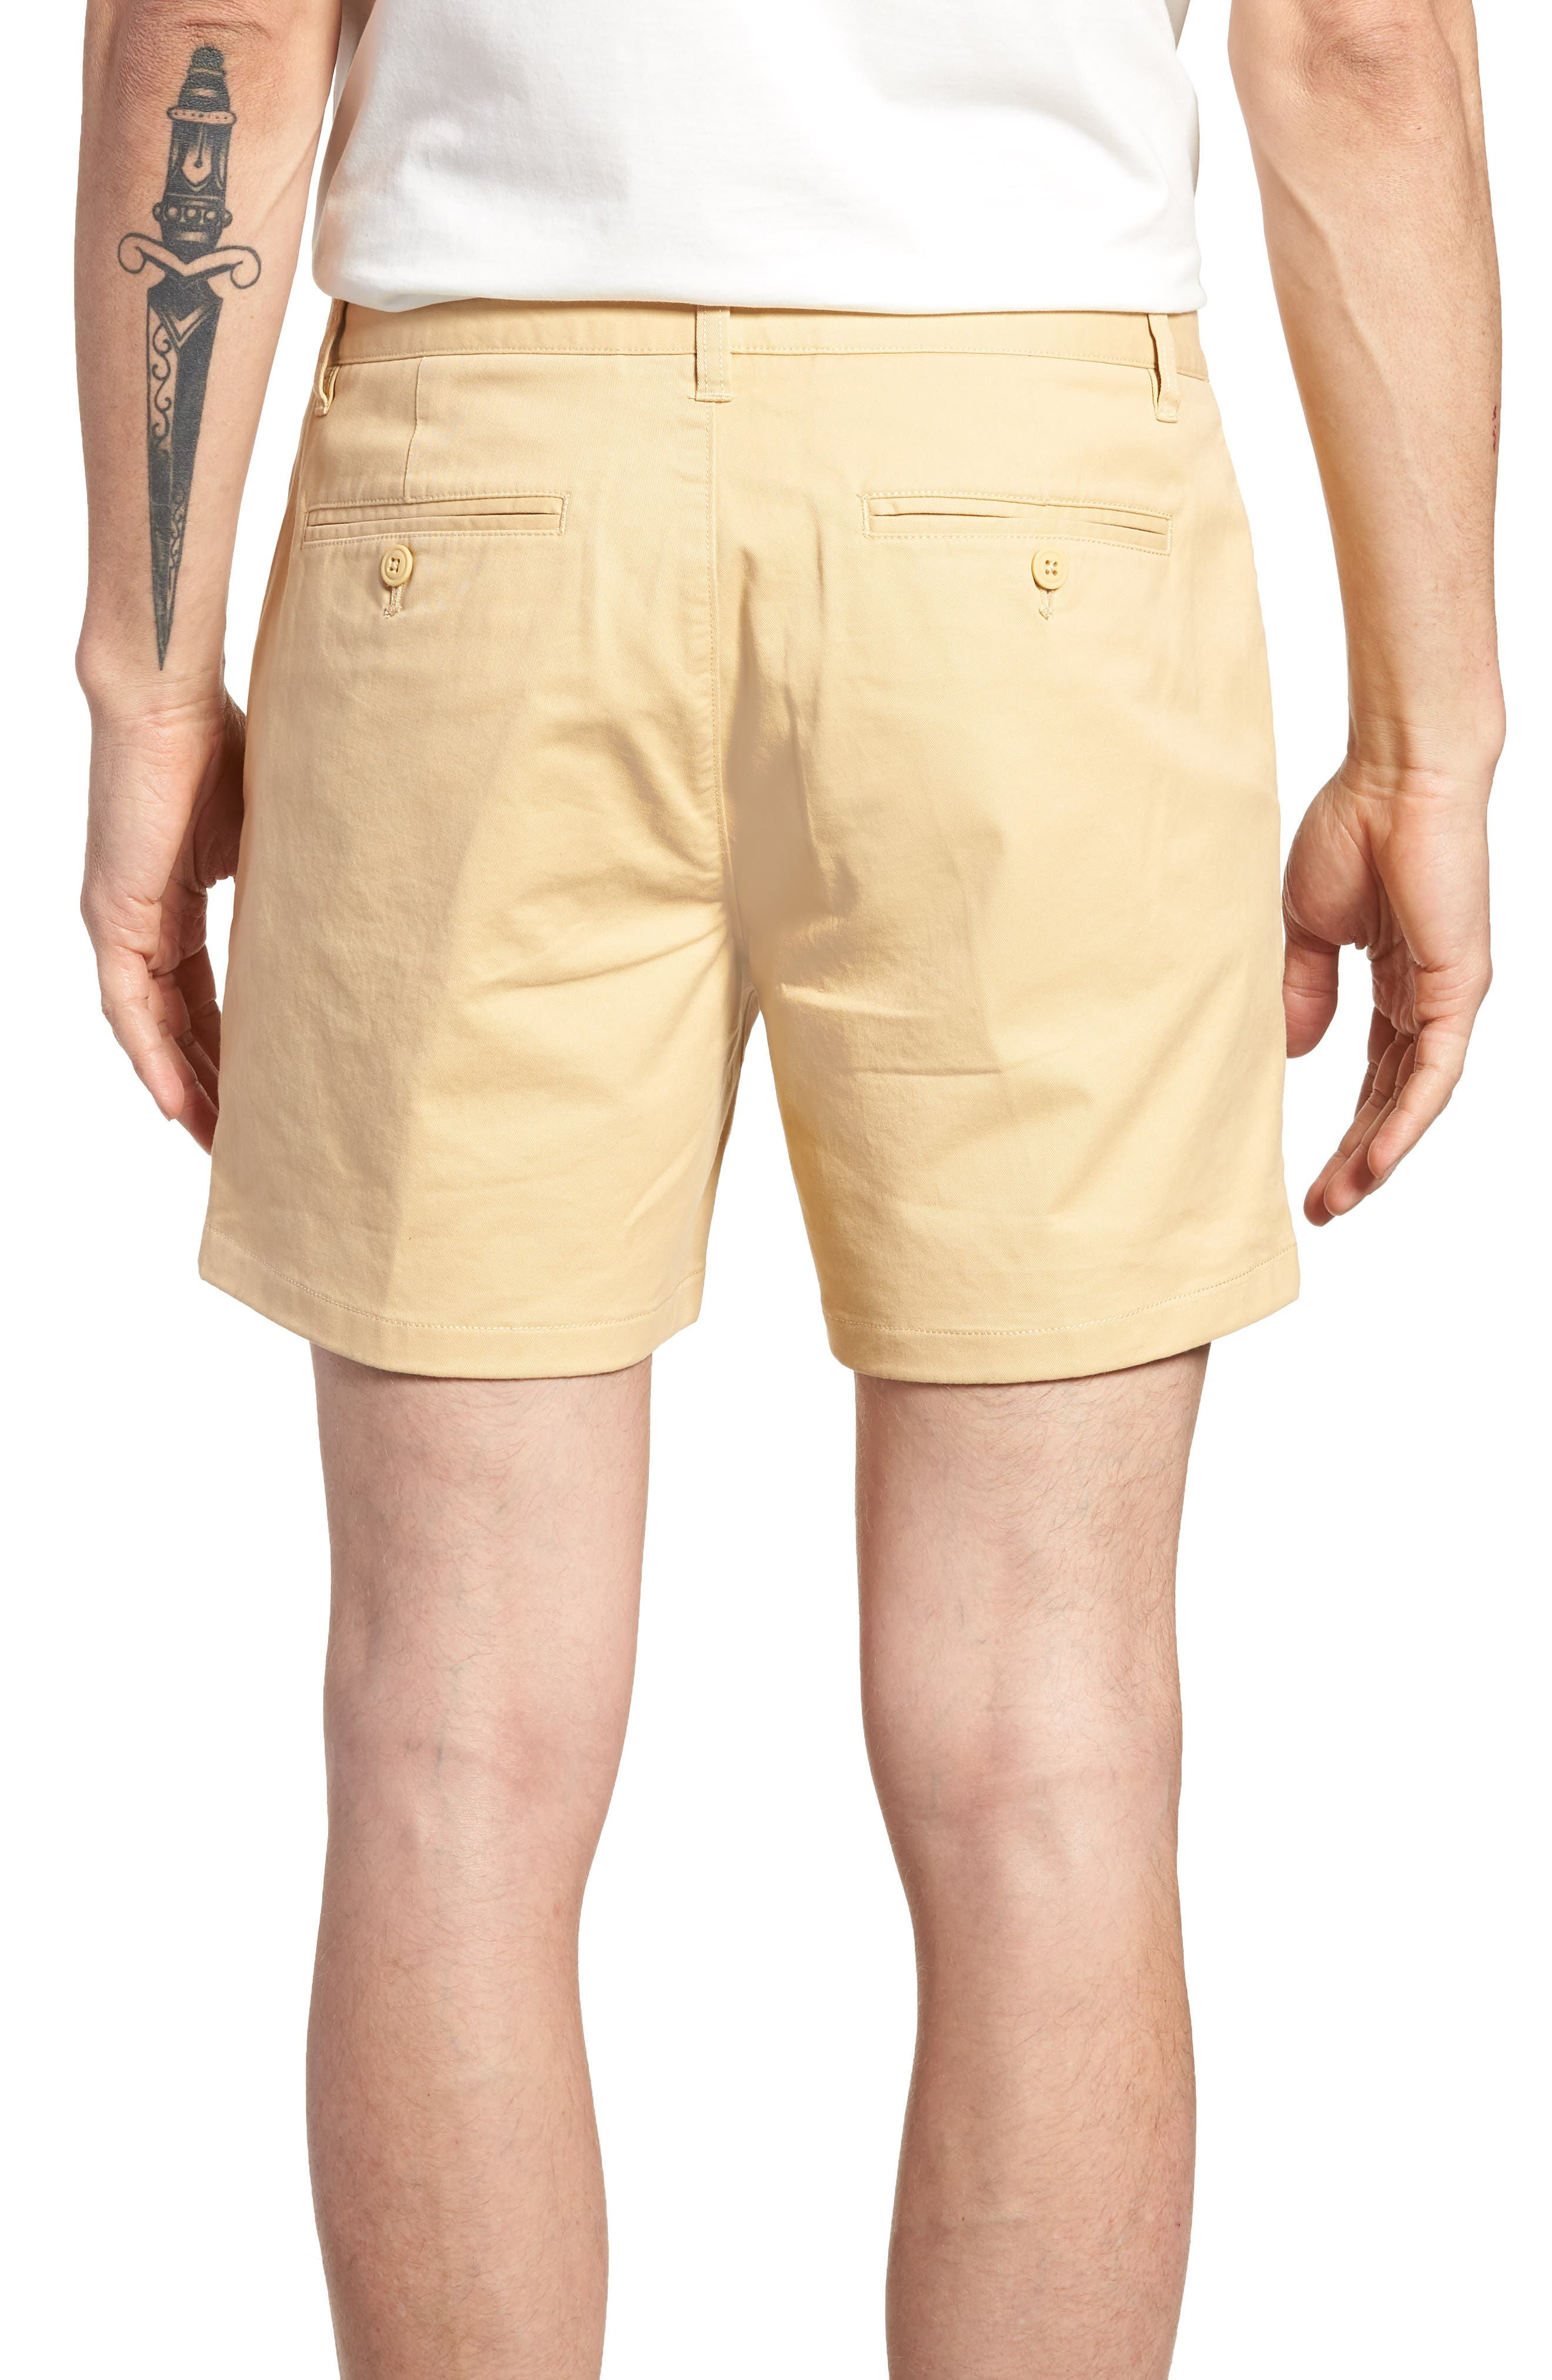 Stretch Washed Chino 5-Inch Shorts,                             Alternate thumbnail 2, color,                             Gold Khaki